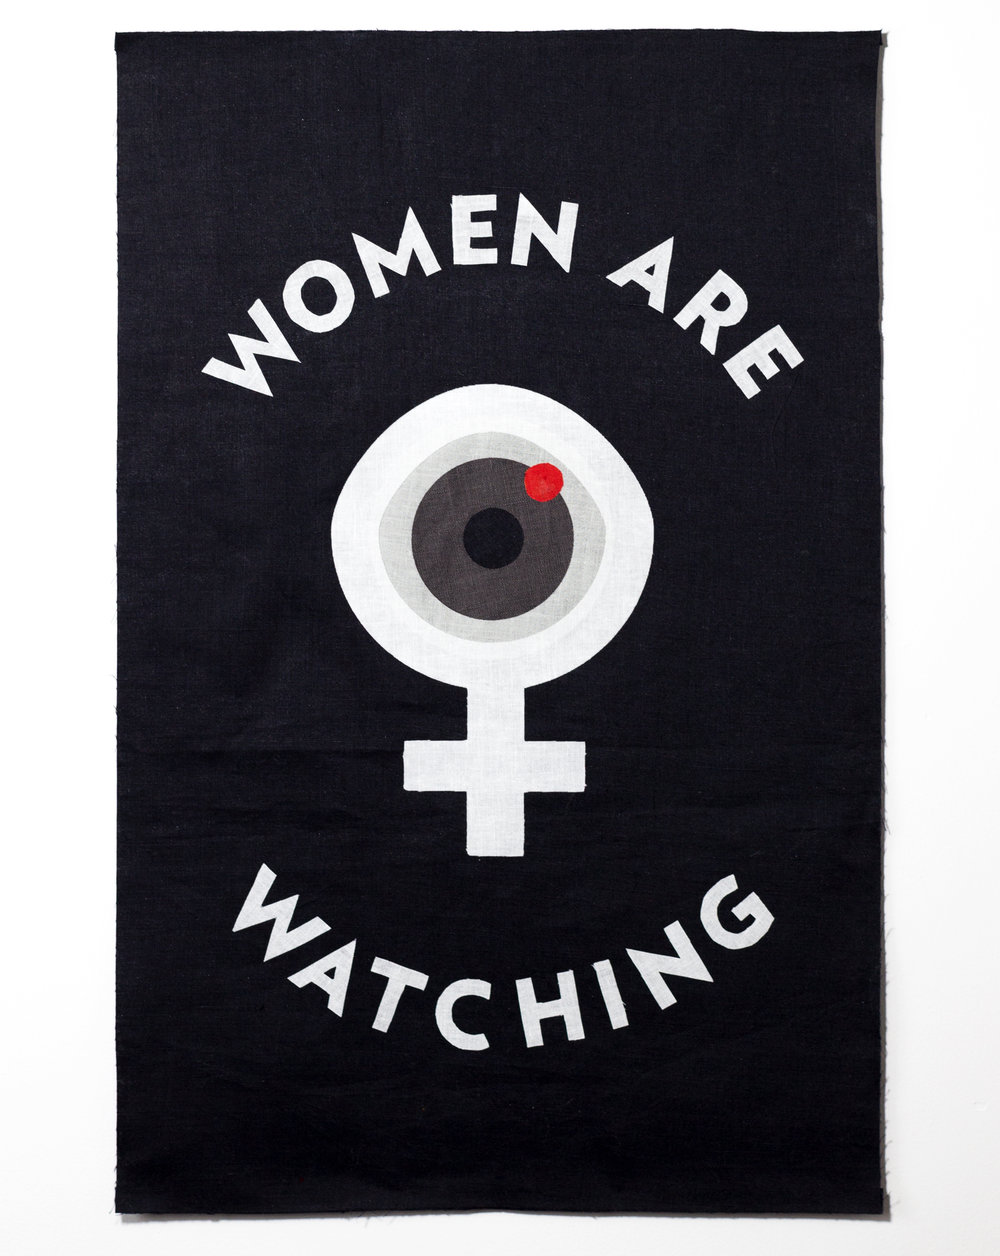 Fabric appliqué protest sign for the Women's March, January 21, 2016